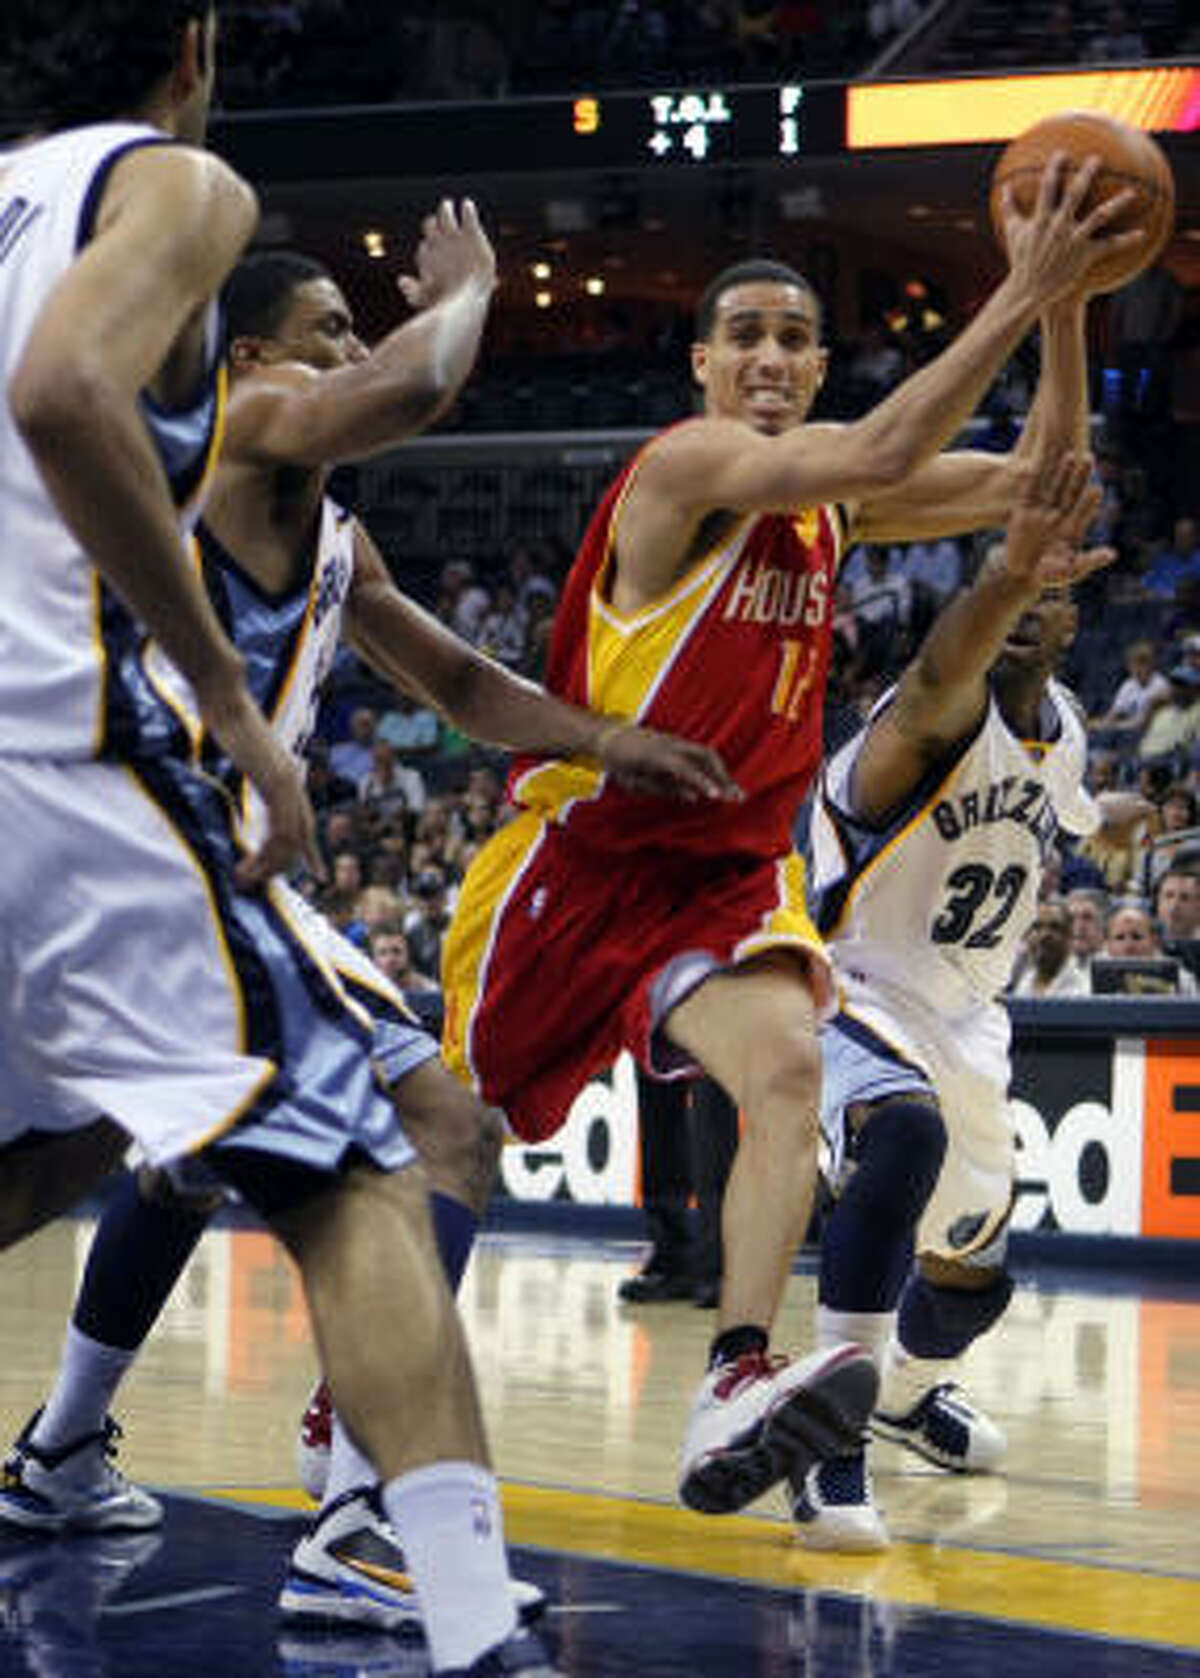 Rockets forward Kevin Martin drives to the basket under pressure from Grizzlies guard O.J. Mayo.